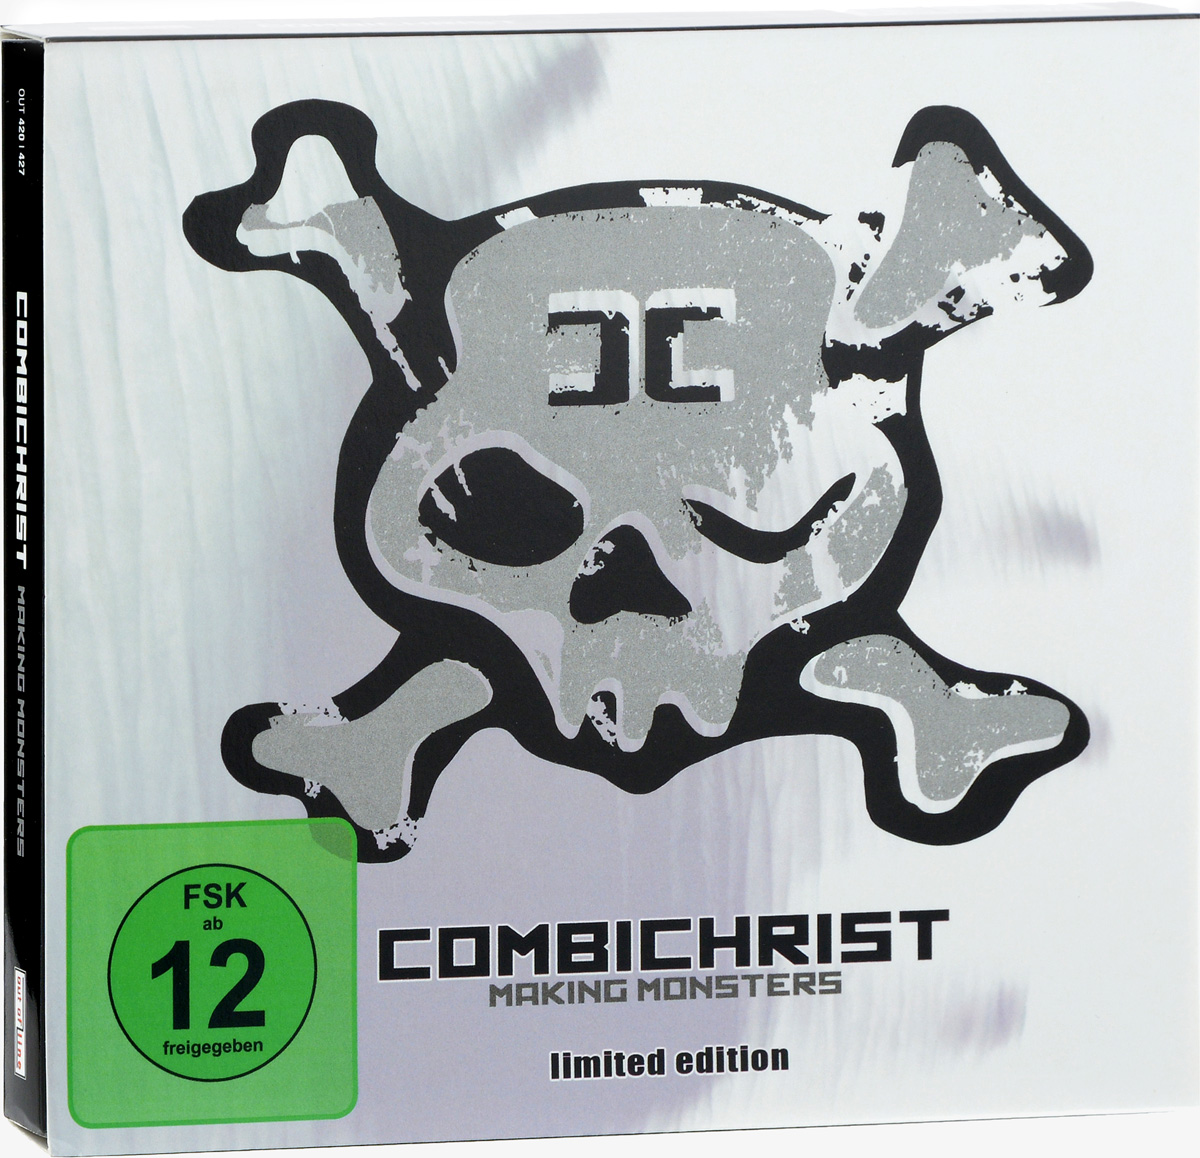 """""""Combichrist"""" Combichrist. Making Monsters. Limited Edition (CD + DVD)"""